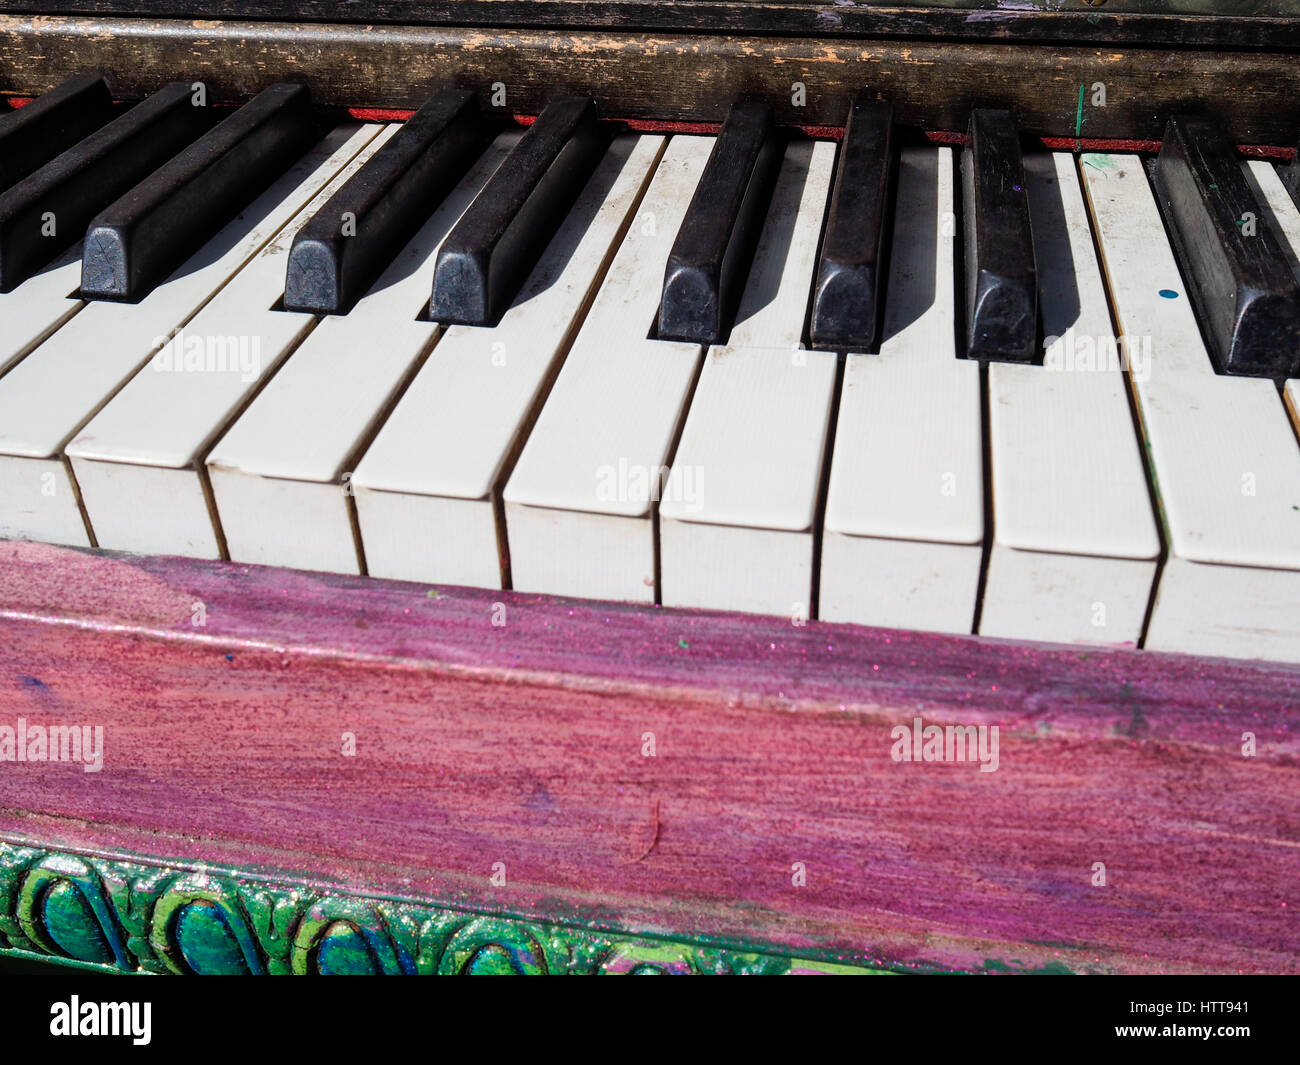 Denver, CO - 20 July 2016: One of 17 public pianos put up on Denver's 16th Street Mall in Denver, CO. The pianos - Stock Image